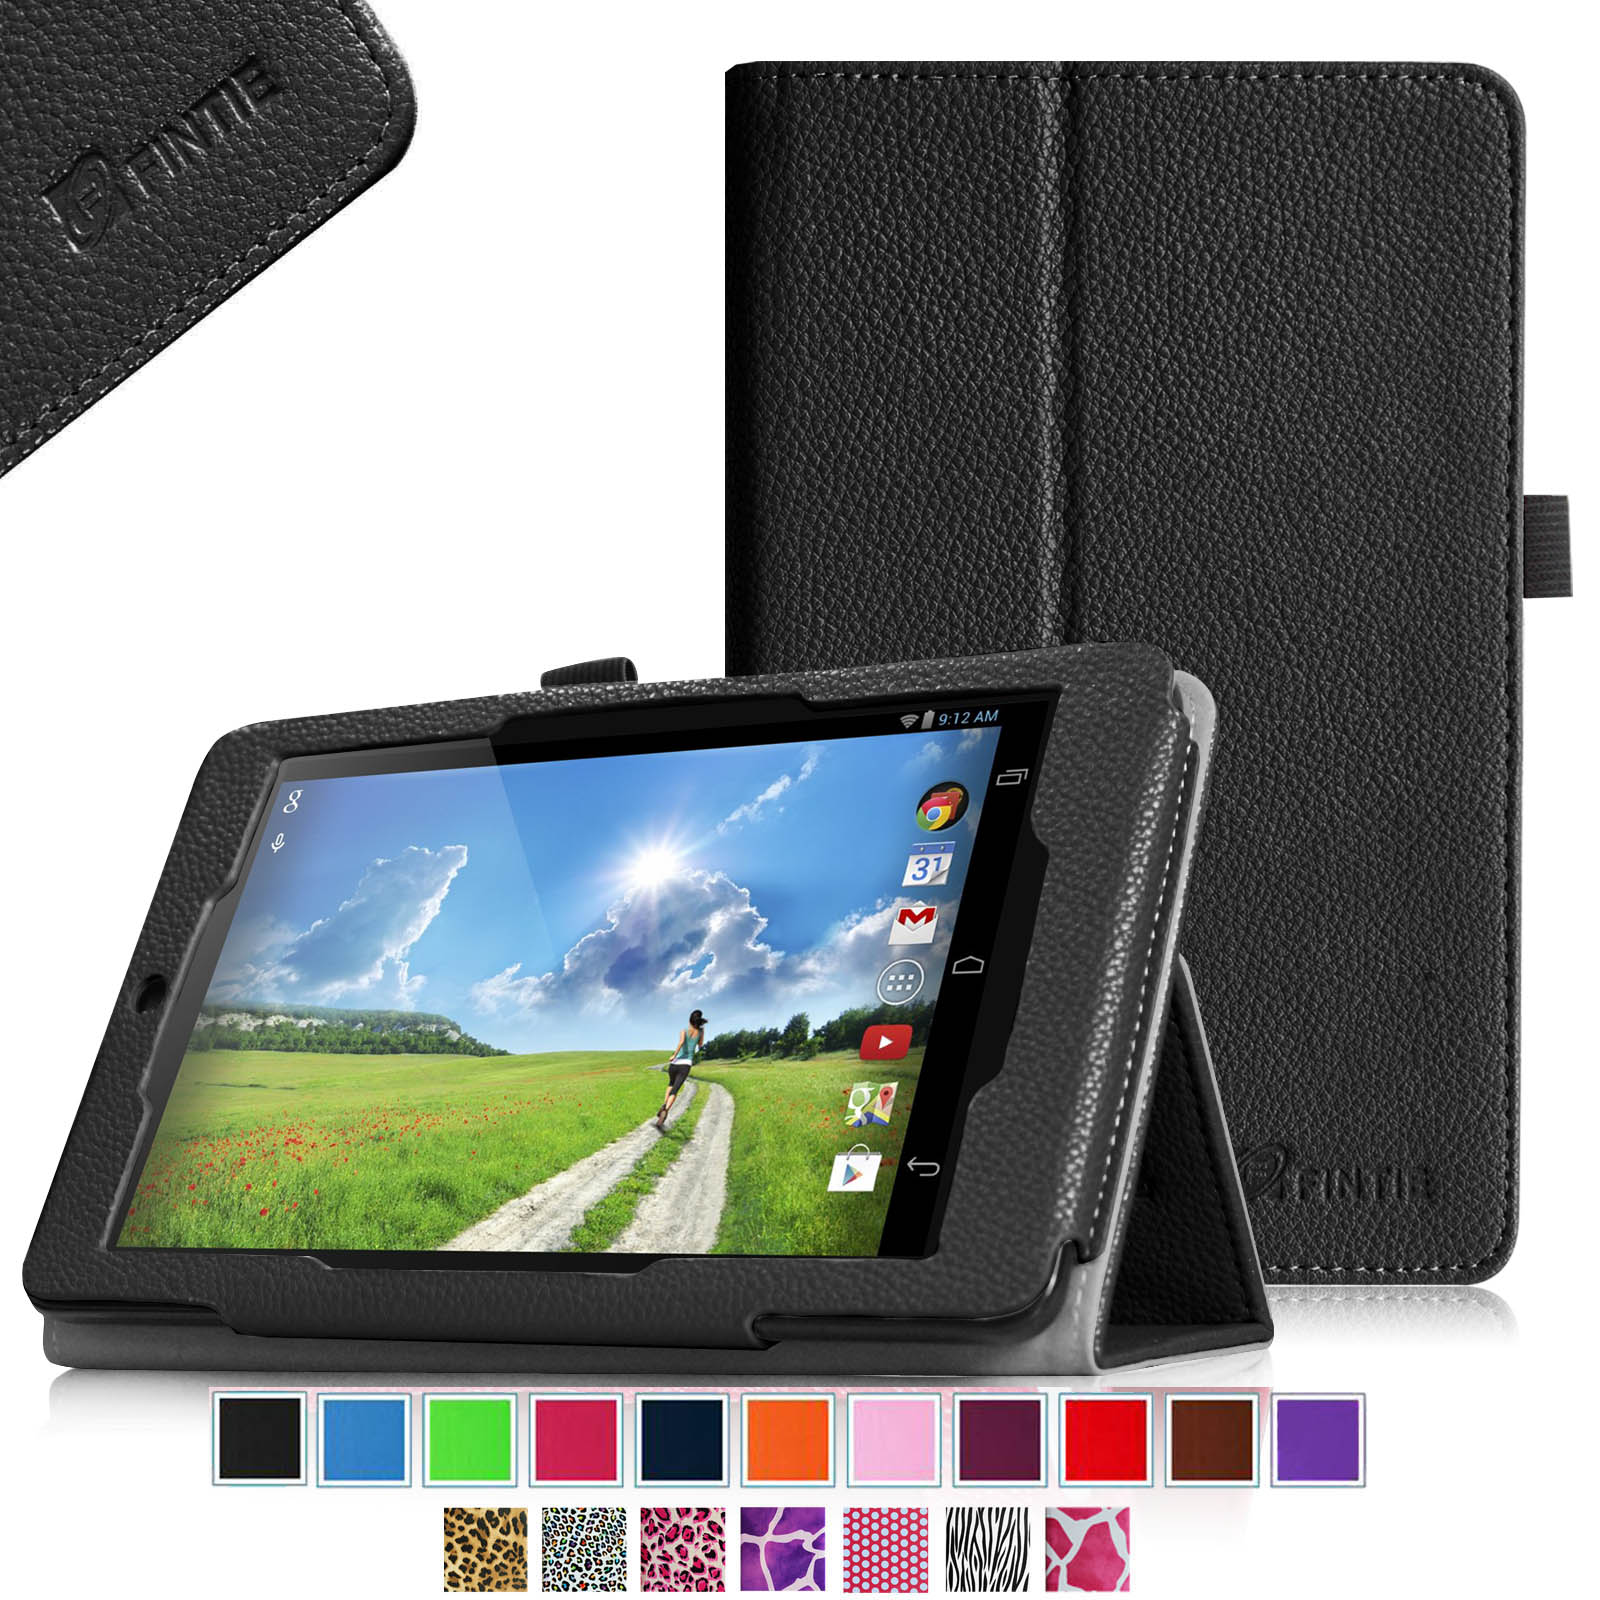 Fintie Acer Iconia One 7 B1-730HD Tablet Folio Case - Premium Vegan Leather Cover with Stylus Holder, Black